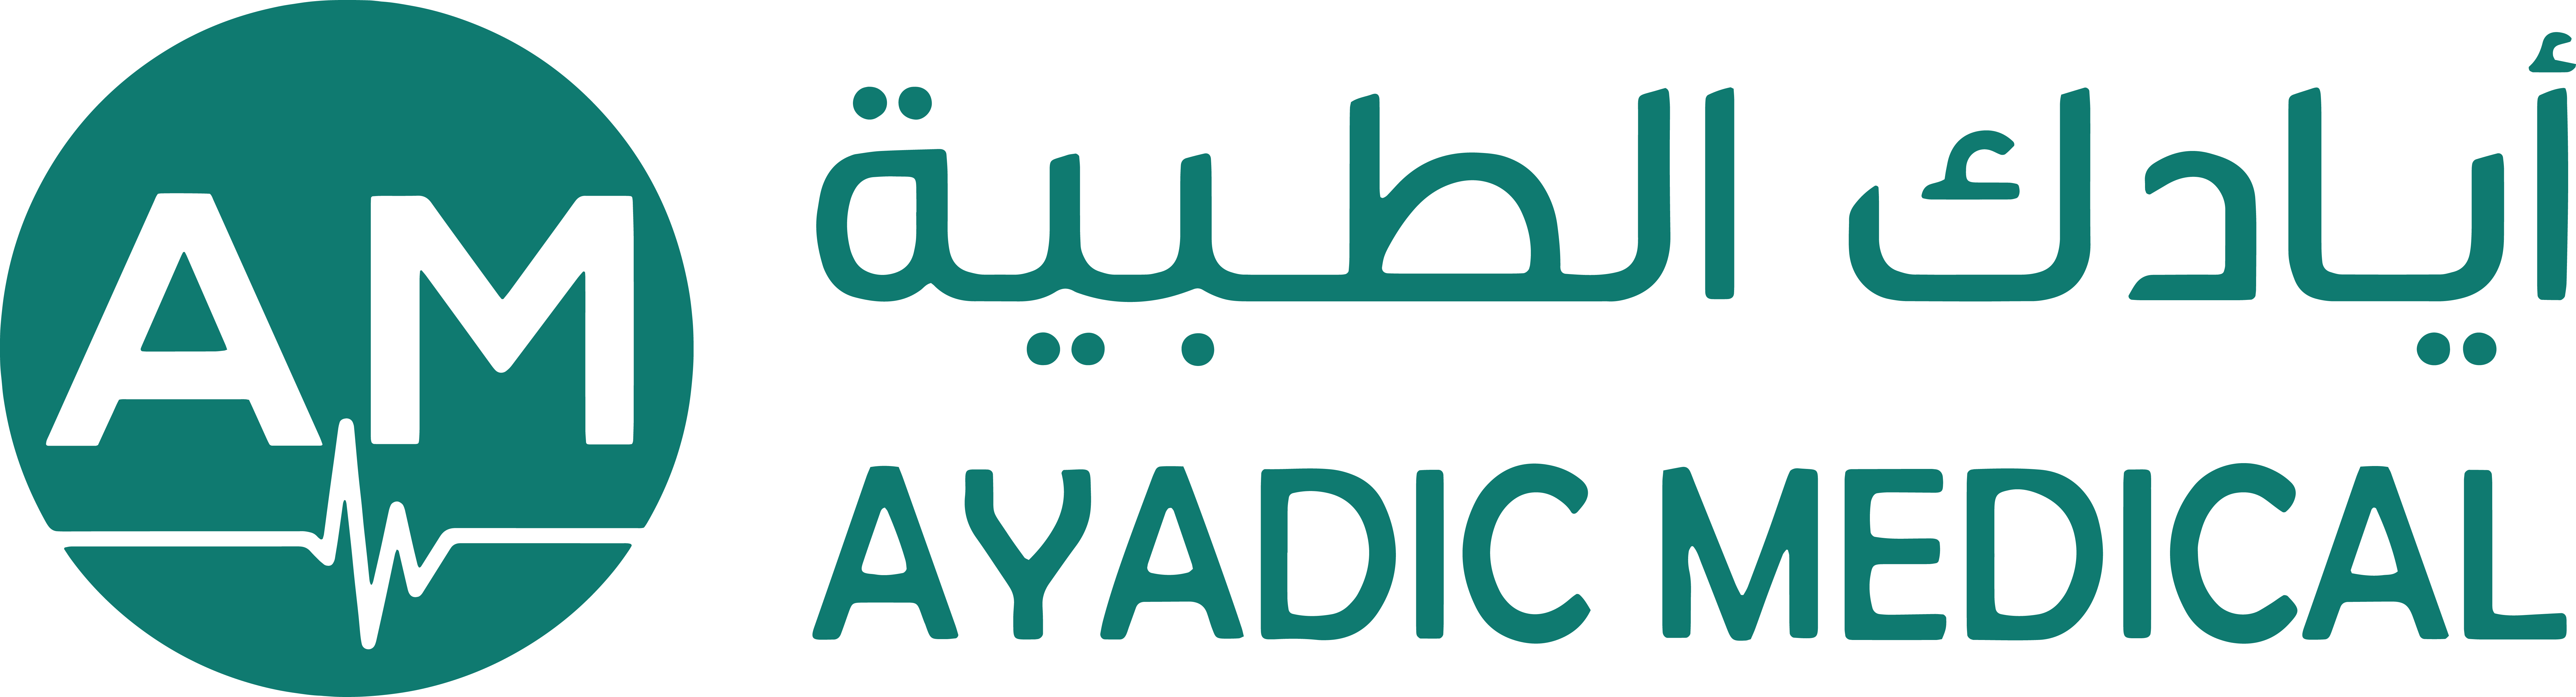 Ayadic Medical EST